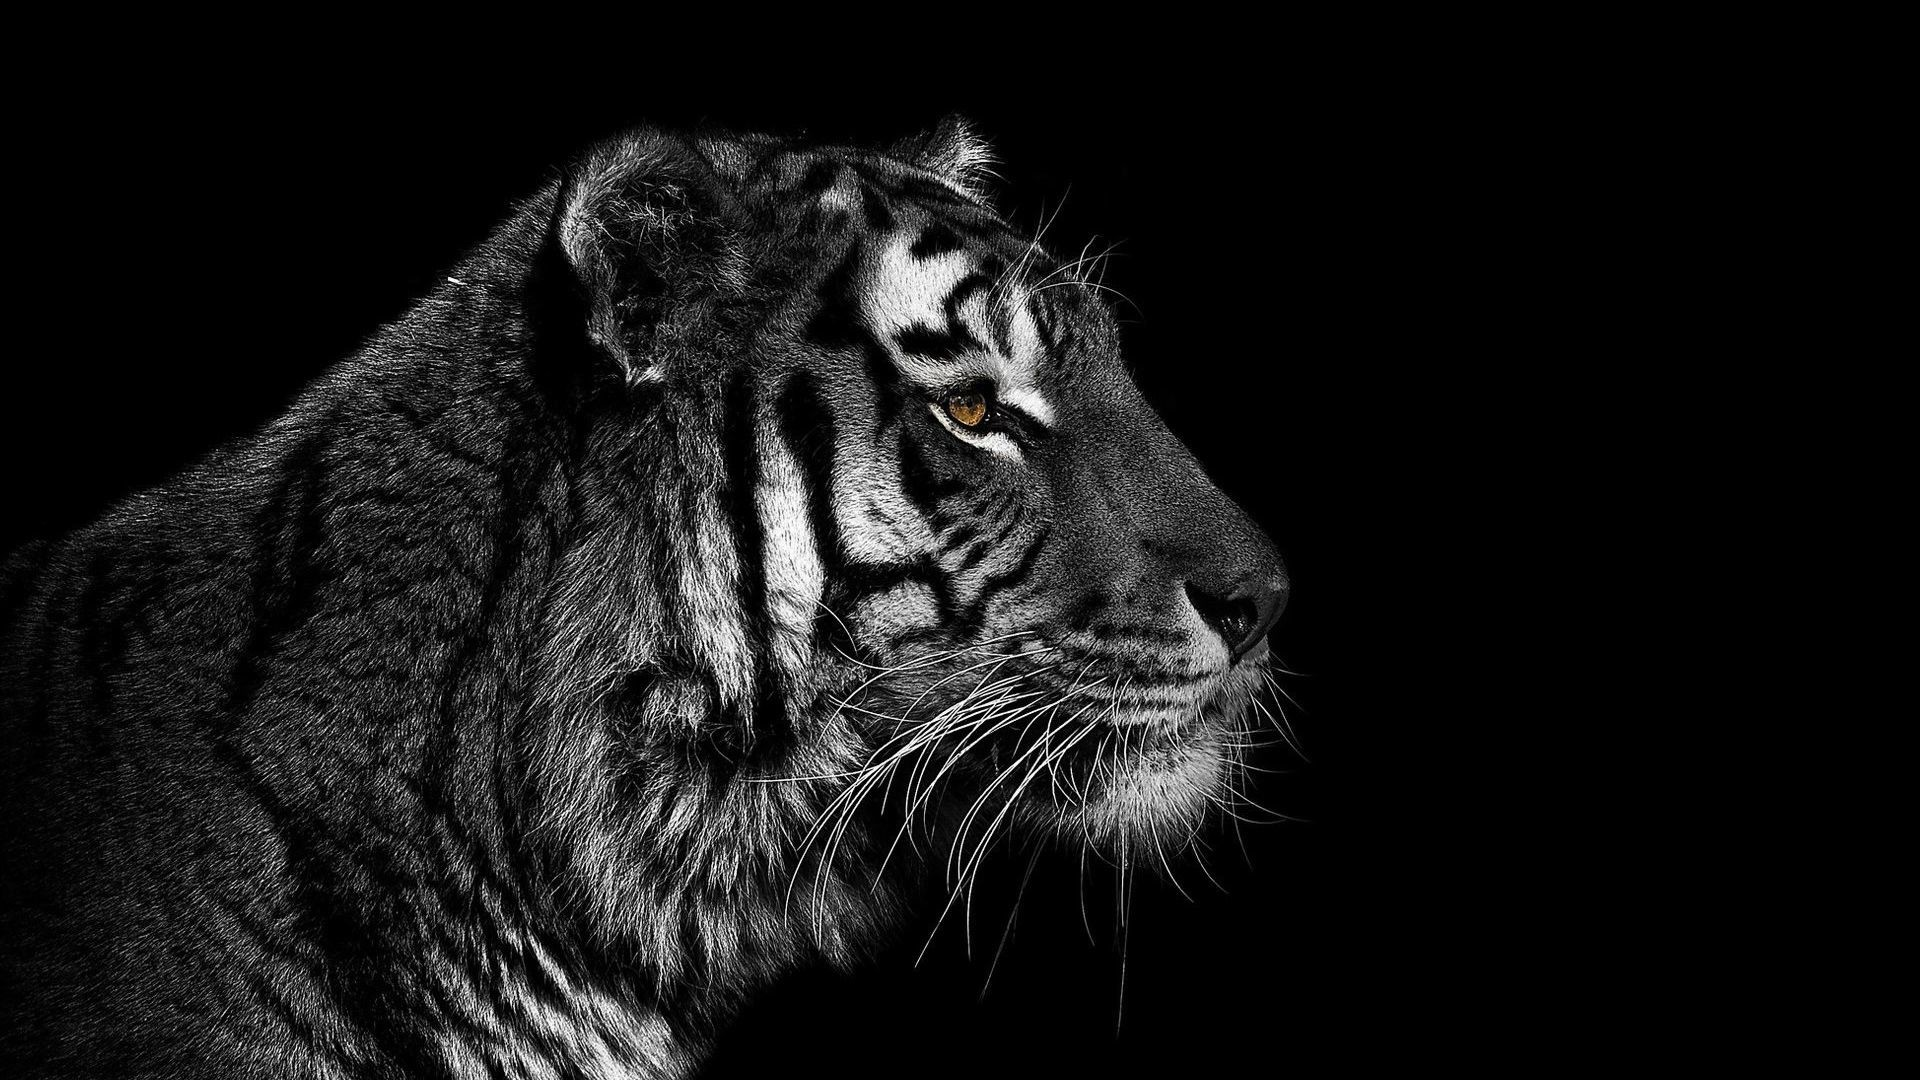 Black And White Tiger Wallpaper (60+ Images